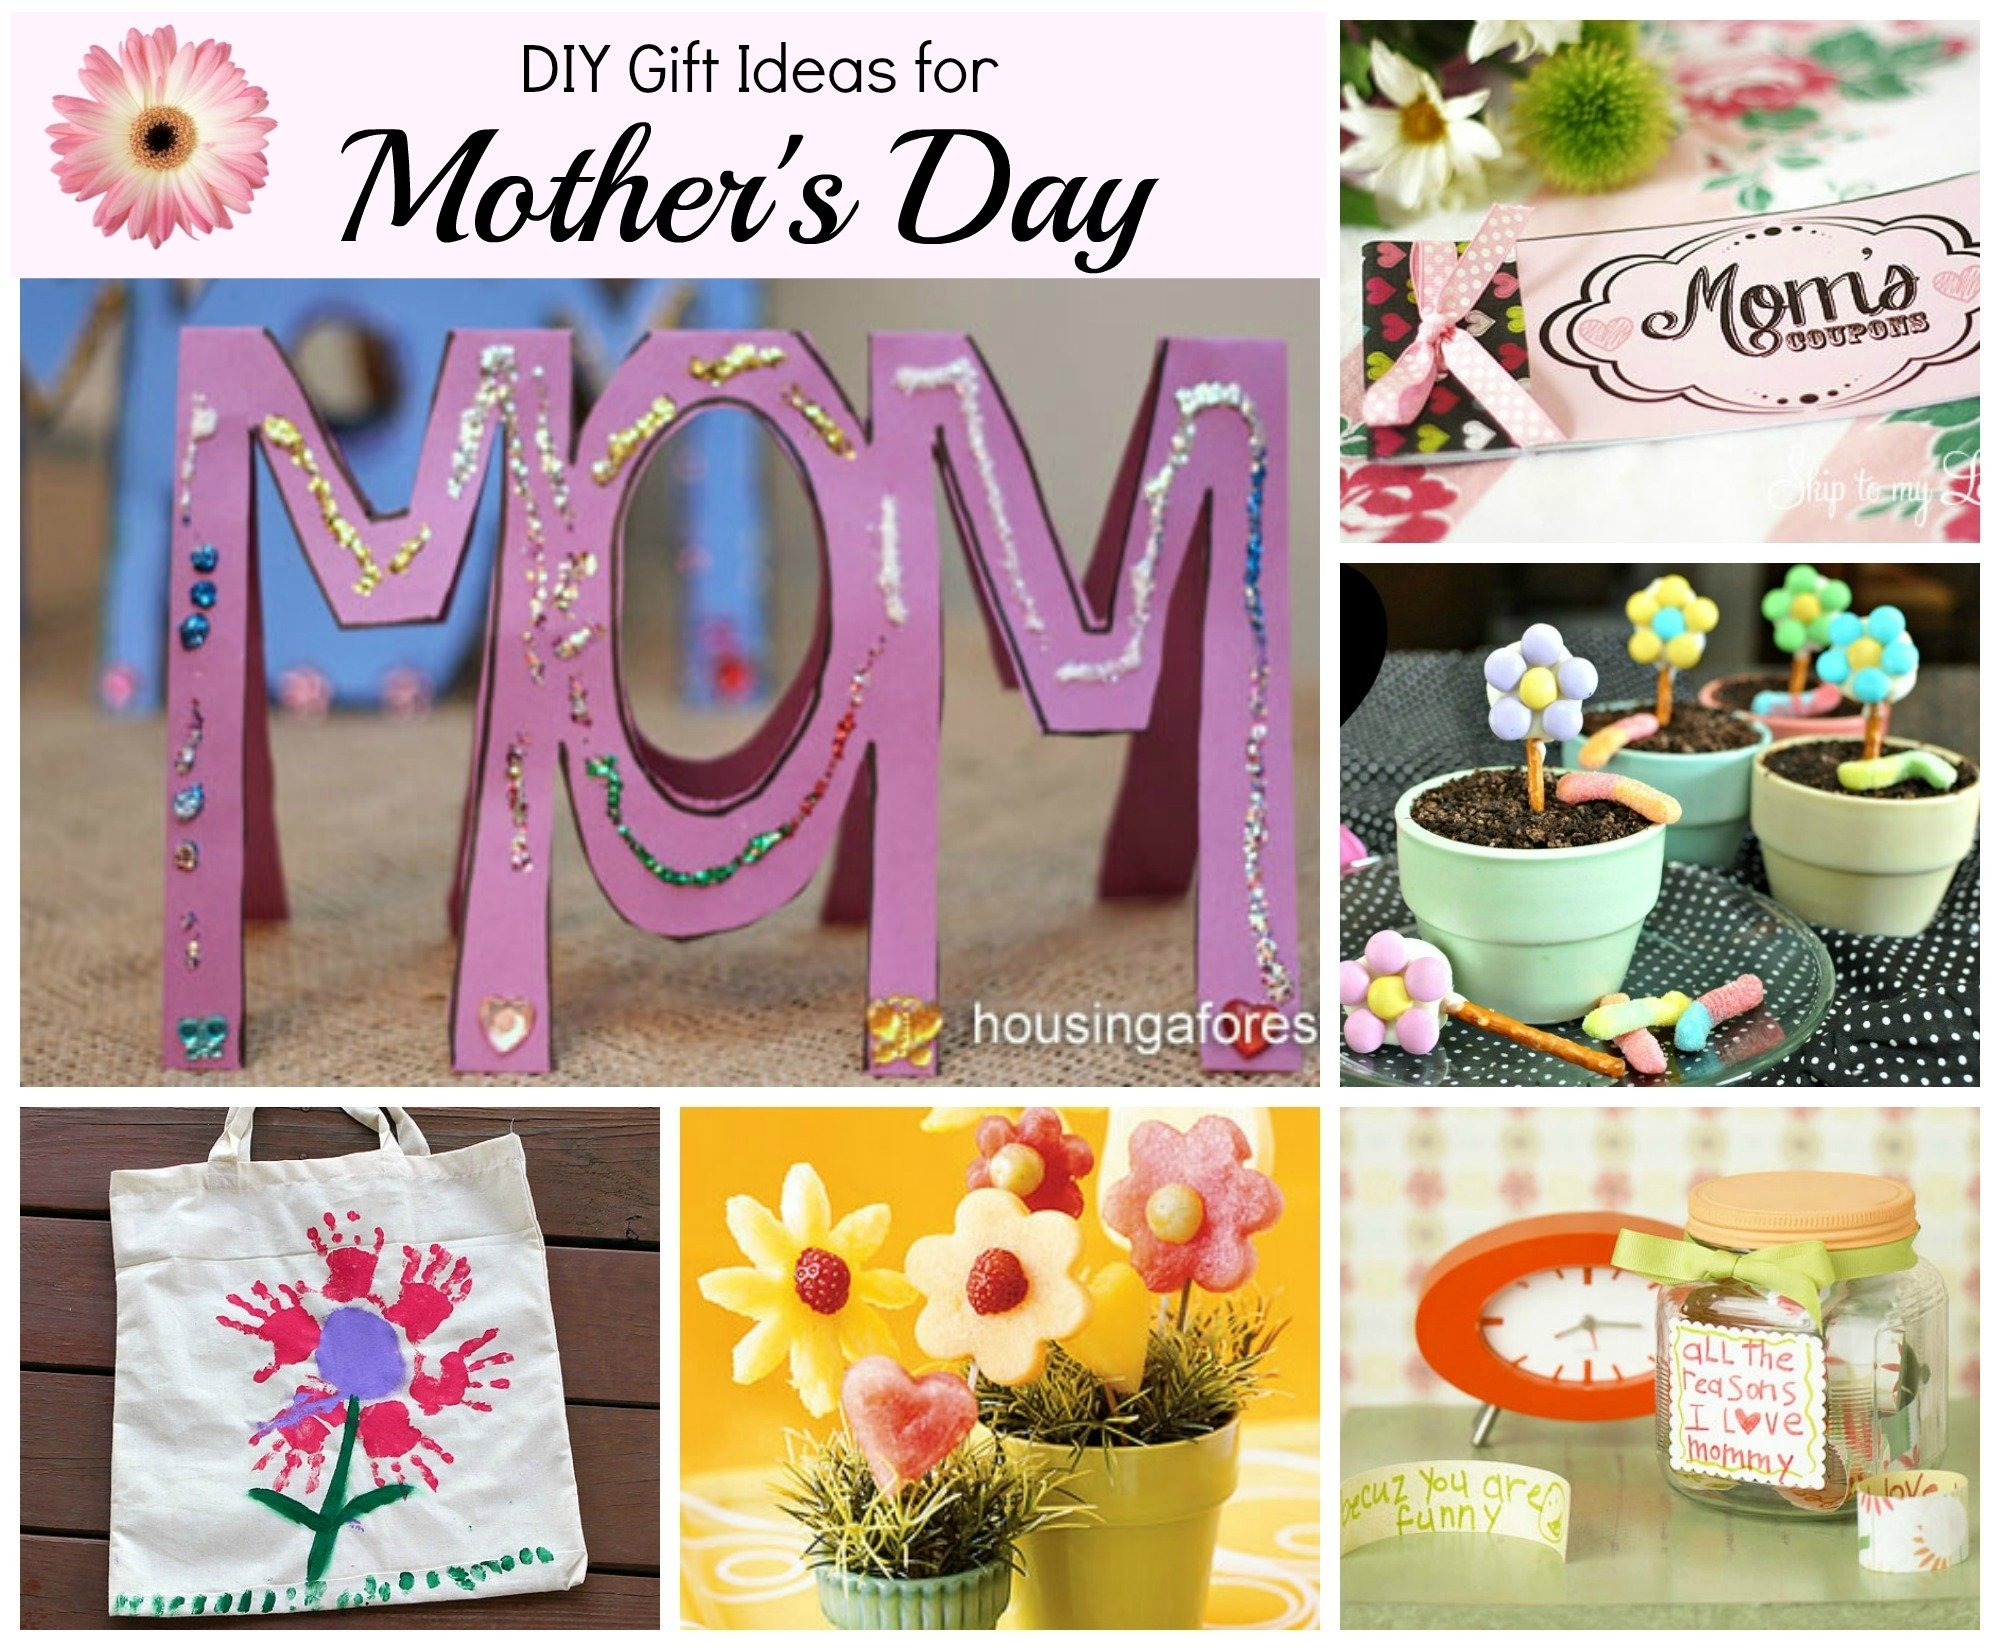 10 Awesome Diy Gift Ideas For Mom mothers day gift ideas celebrating holidays 3